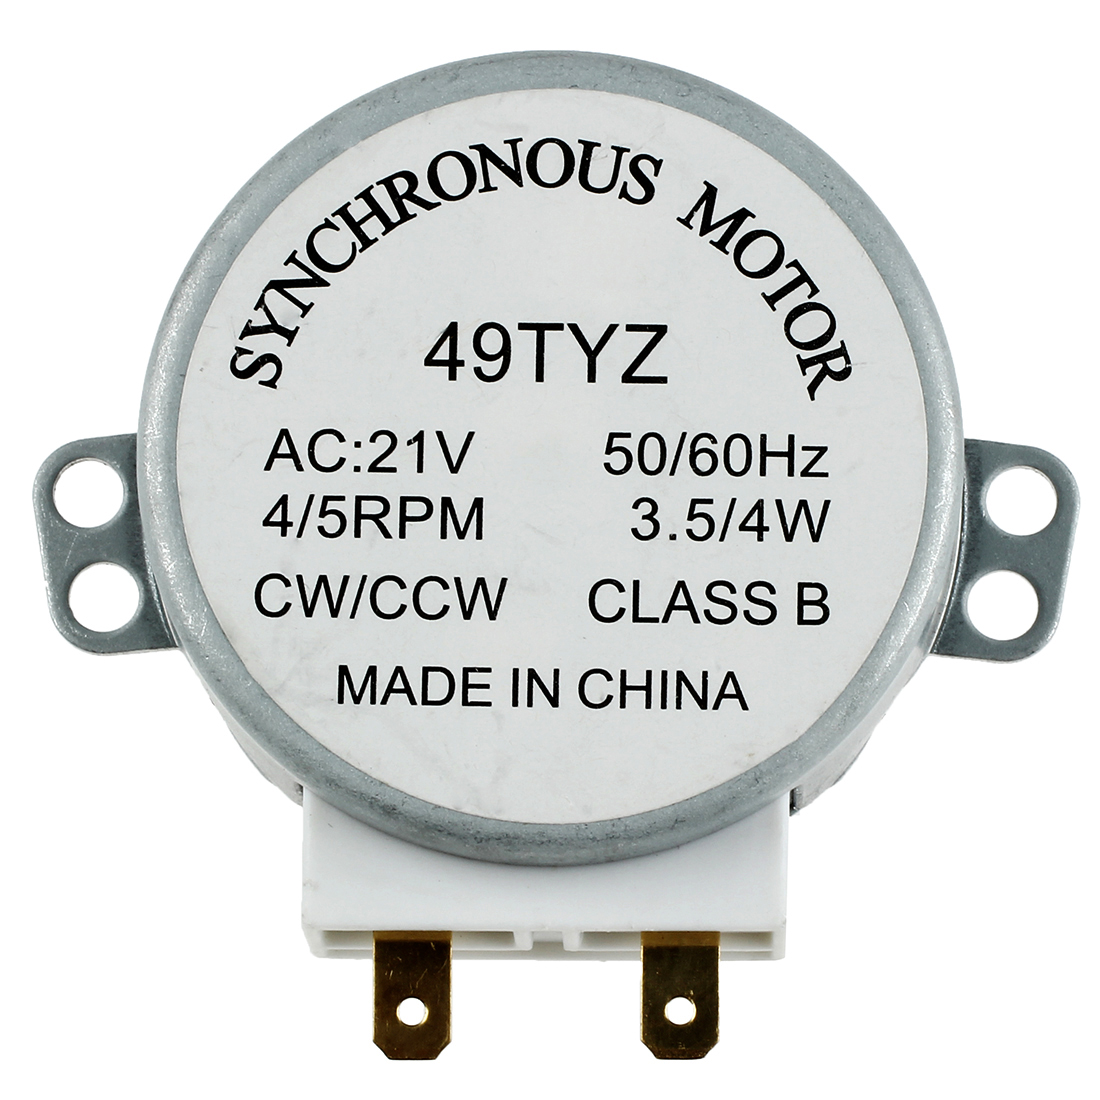 mini wave Oven Turntable Synchronous Motor 3W 5/6RPM AC 21V 50/60Hz(China)